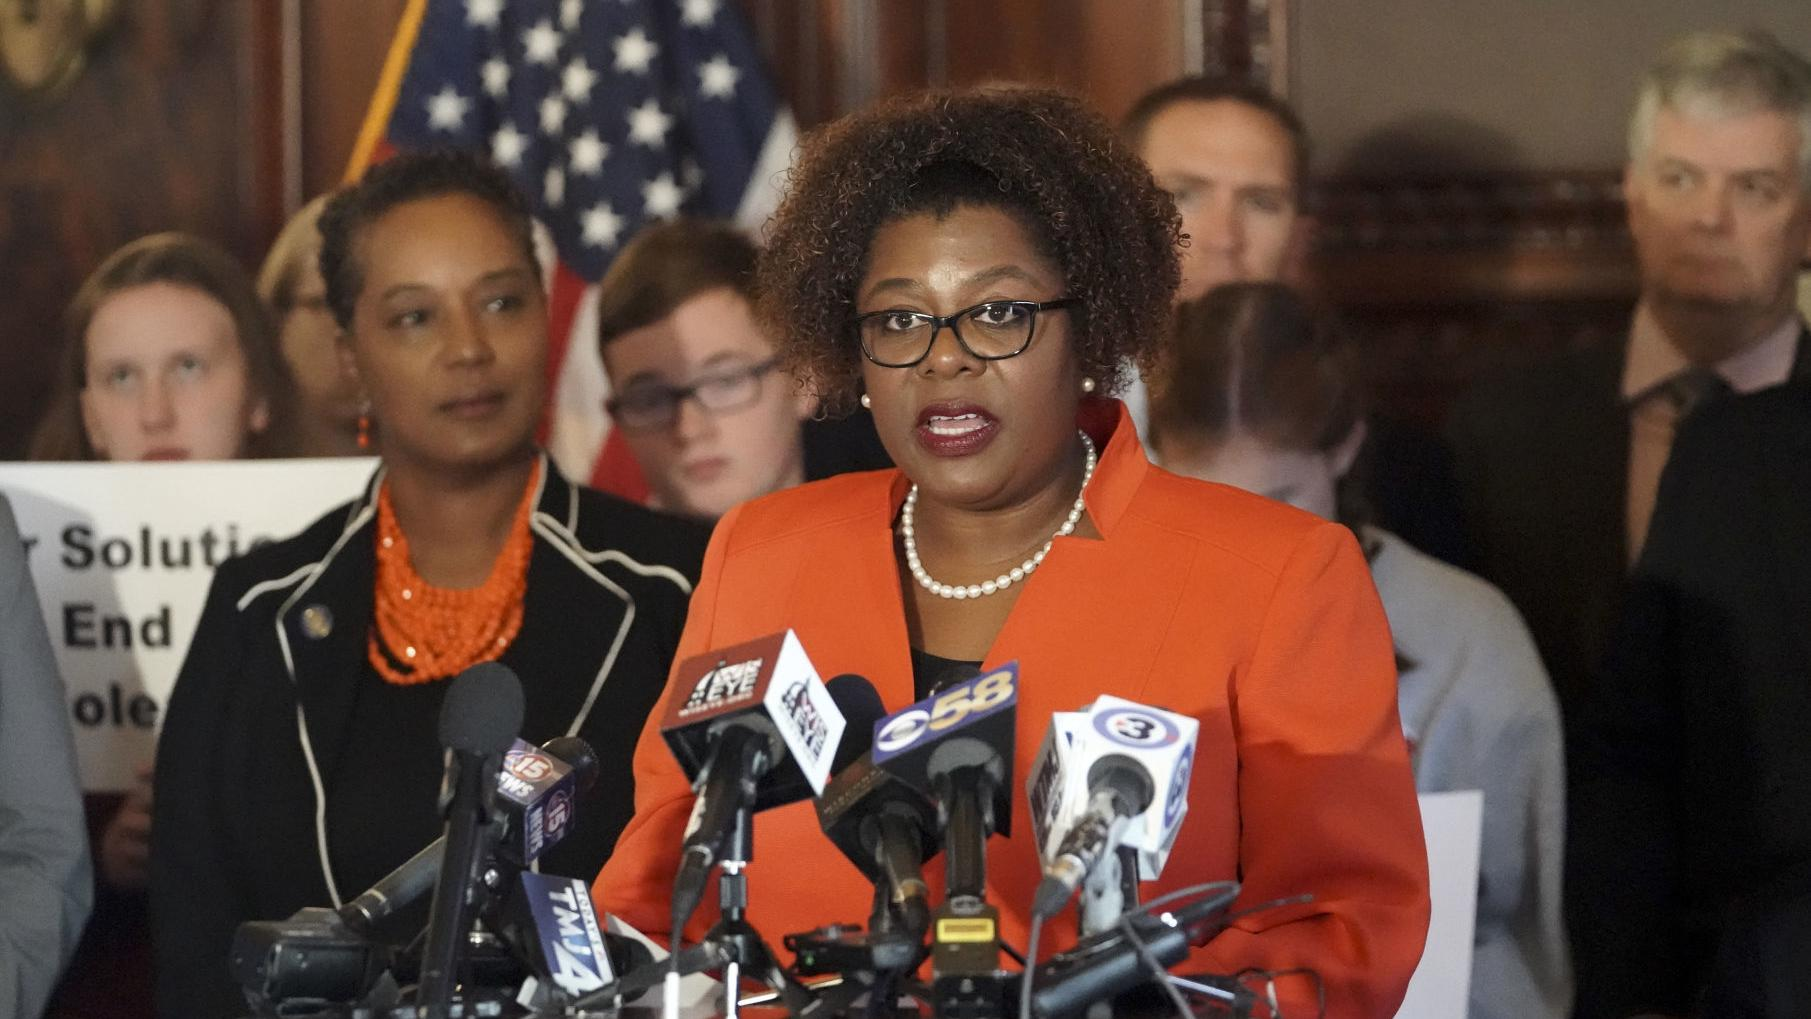 Wisconsin Sen. LaToya Johnson Calls Out Colleagues for Dismissing Concerns of State's Black Community